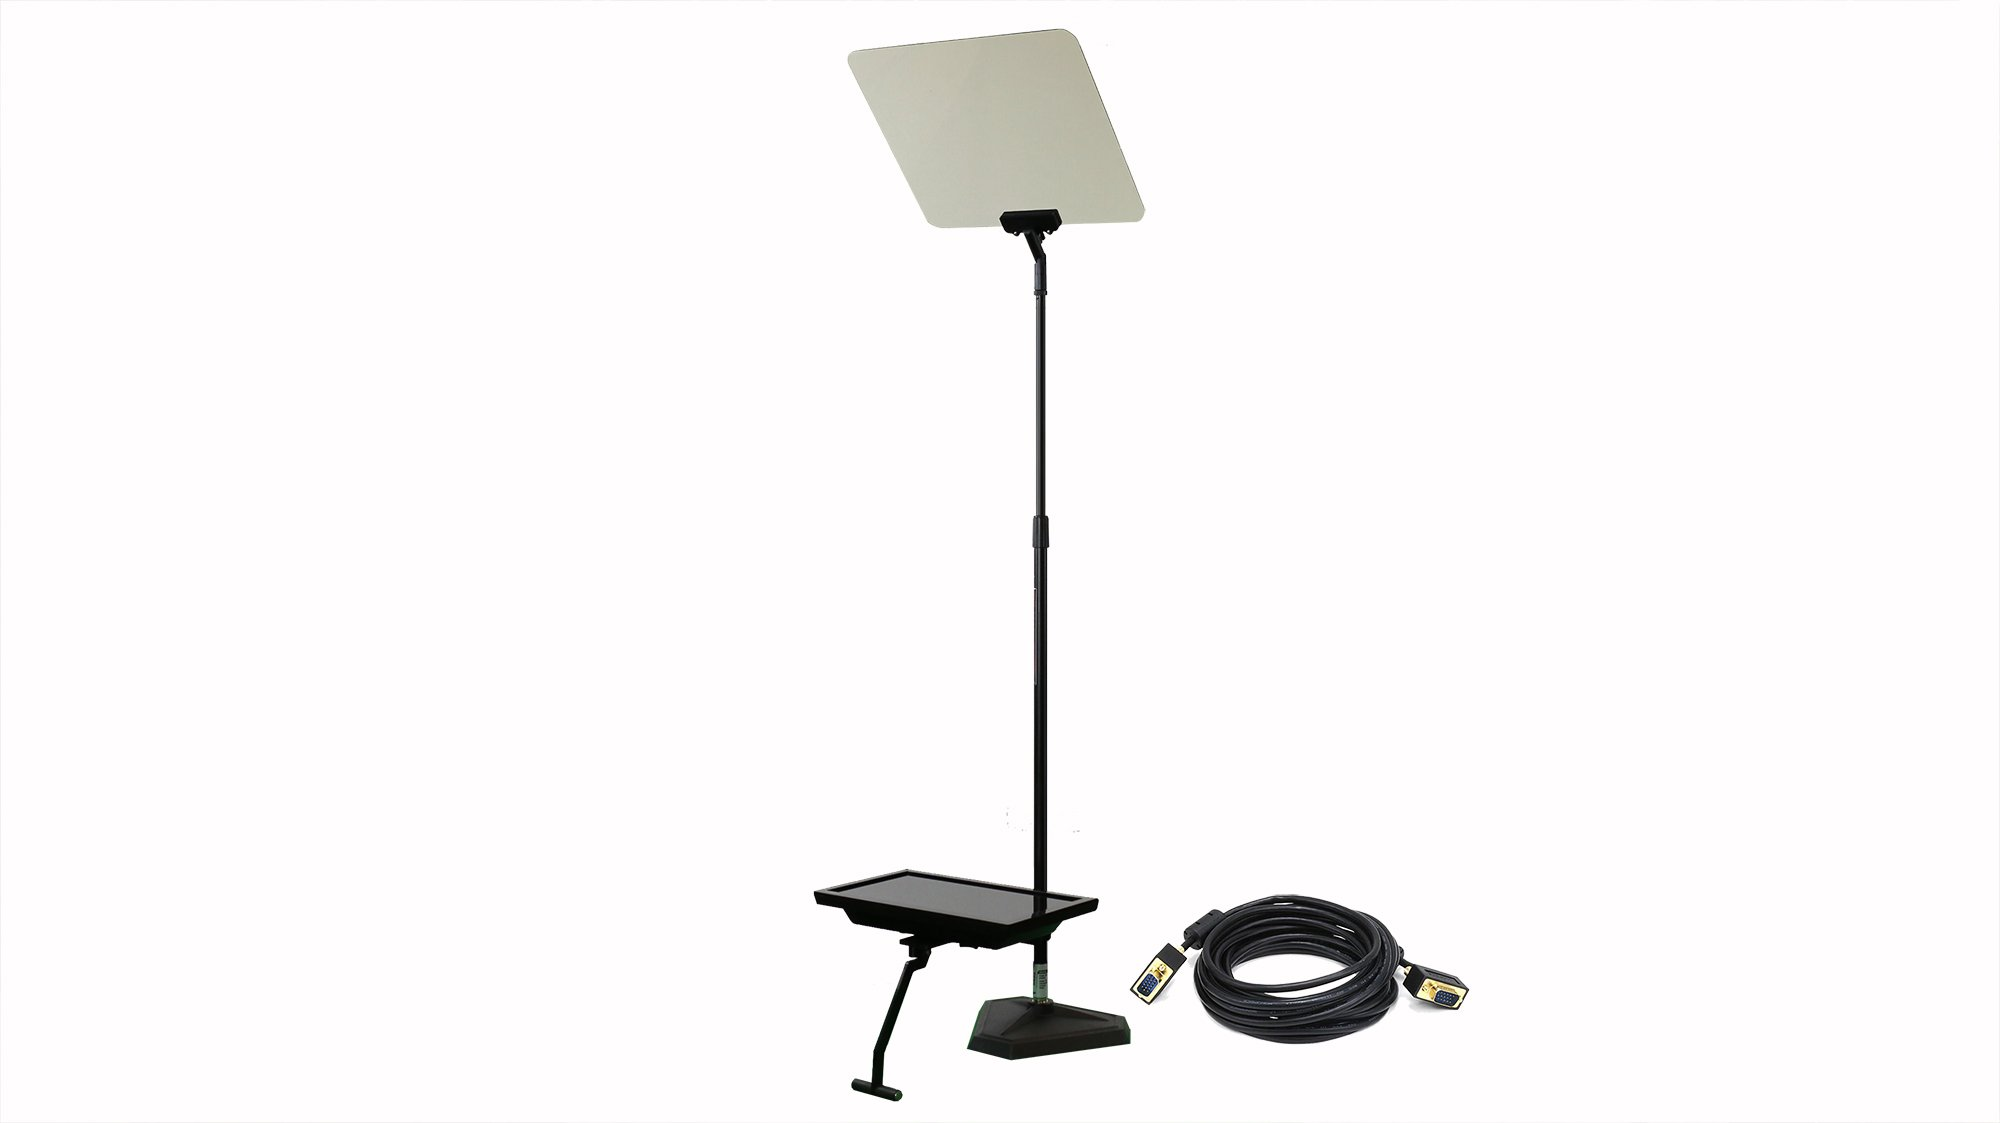 TSP217 Presidential Teleprompter by Telmax Teleprompters